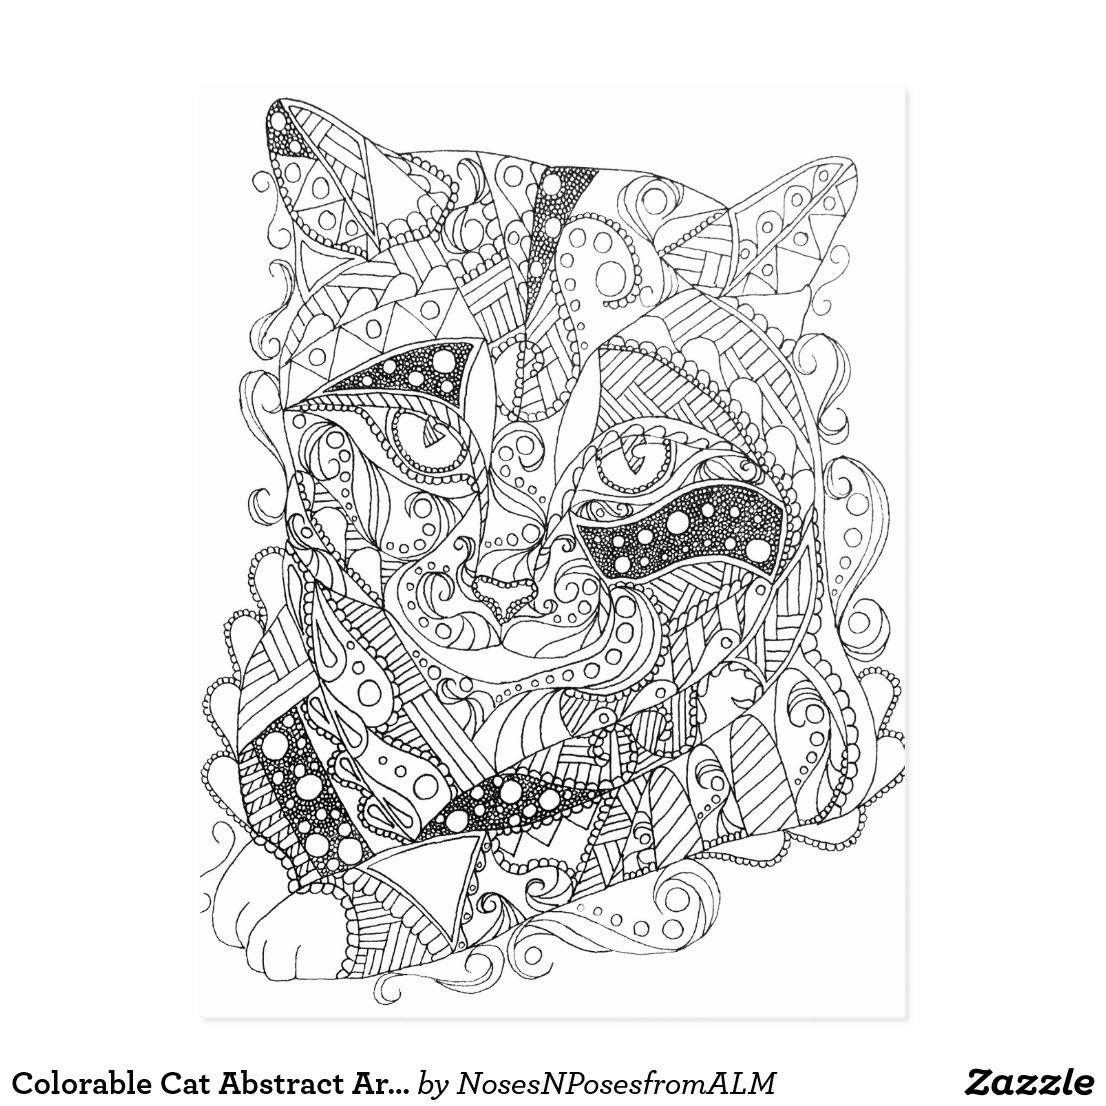 Colorable Cat Abstract Art Adult Coloring Postcard Zazzle Com